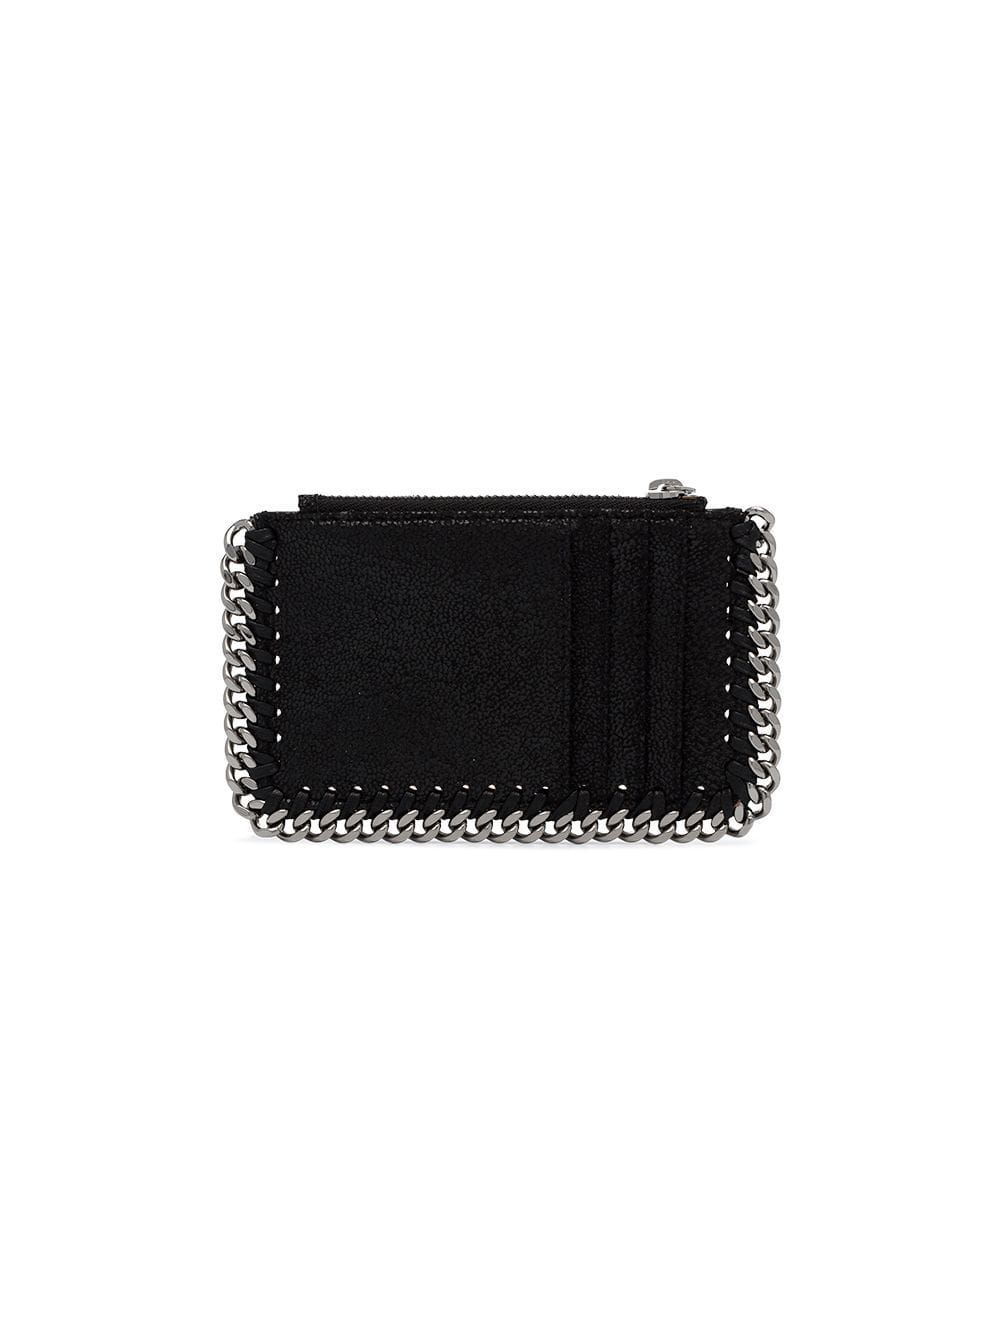 STELLA MCCARTNEY WOMEN'S 422364W91321000 BLACK POLYESTER CARD HOLDER